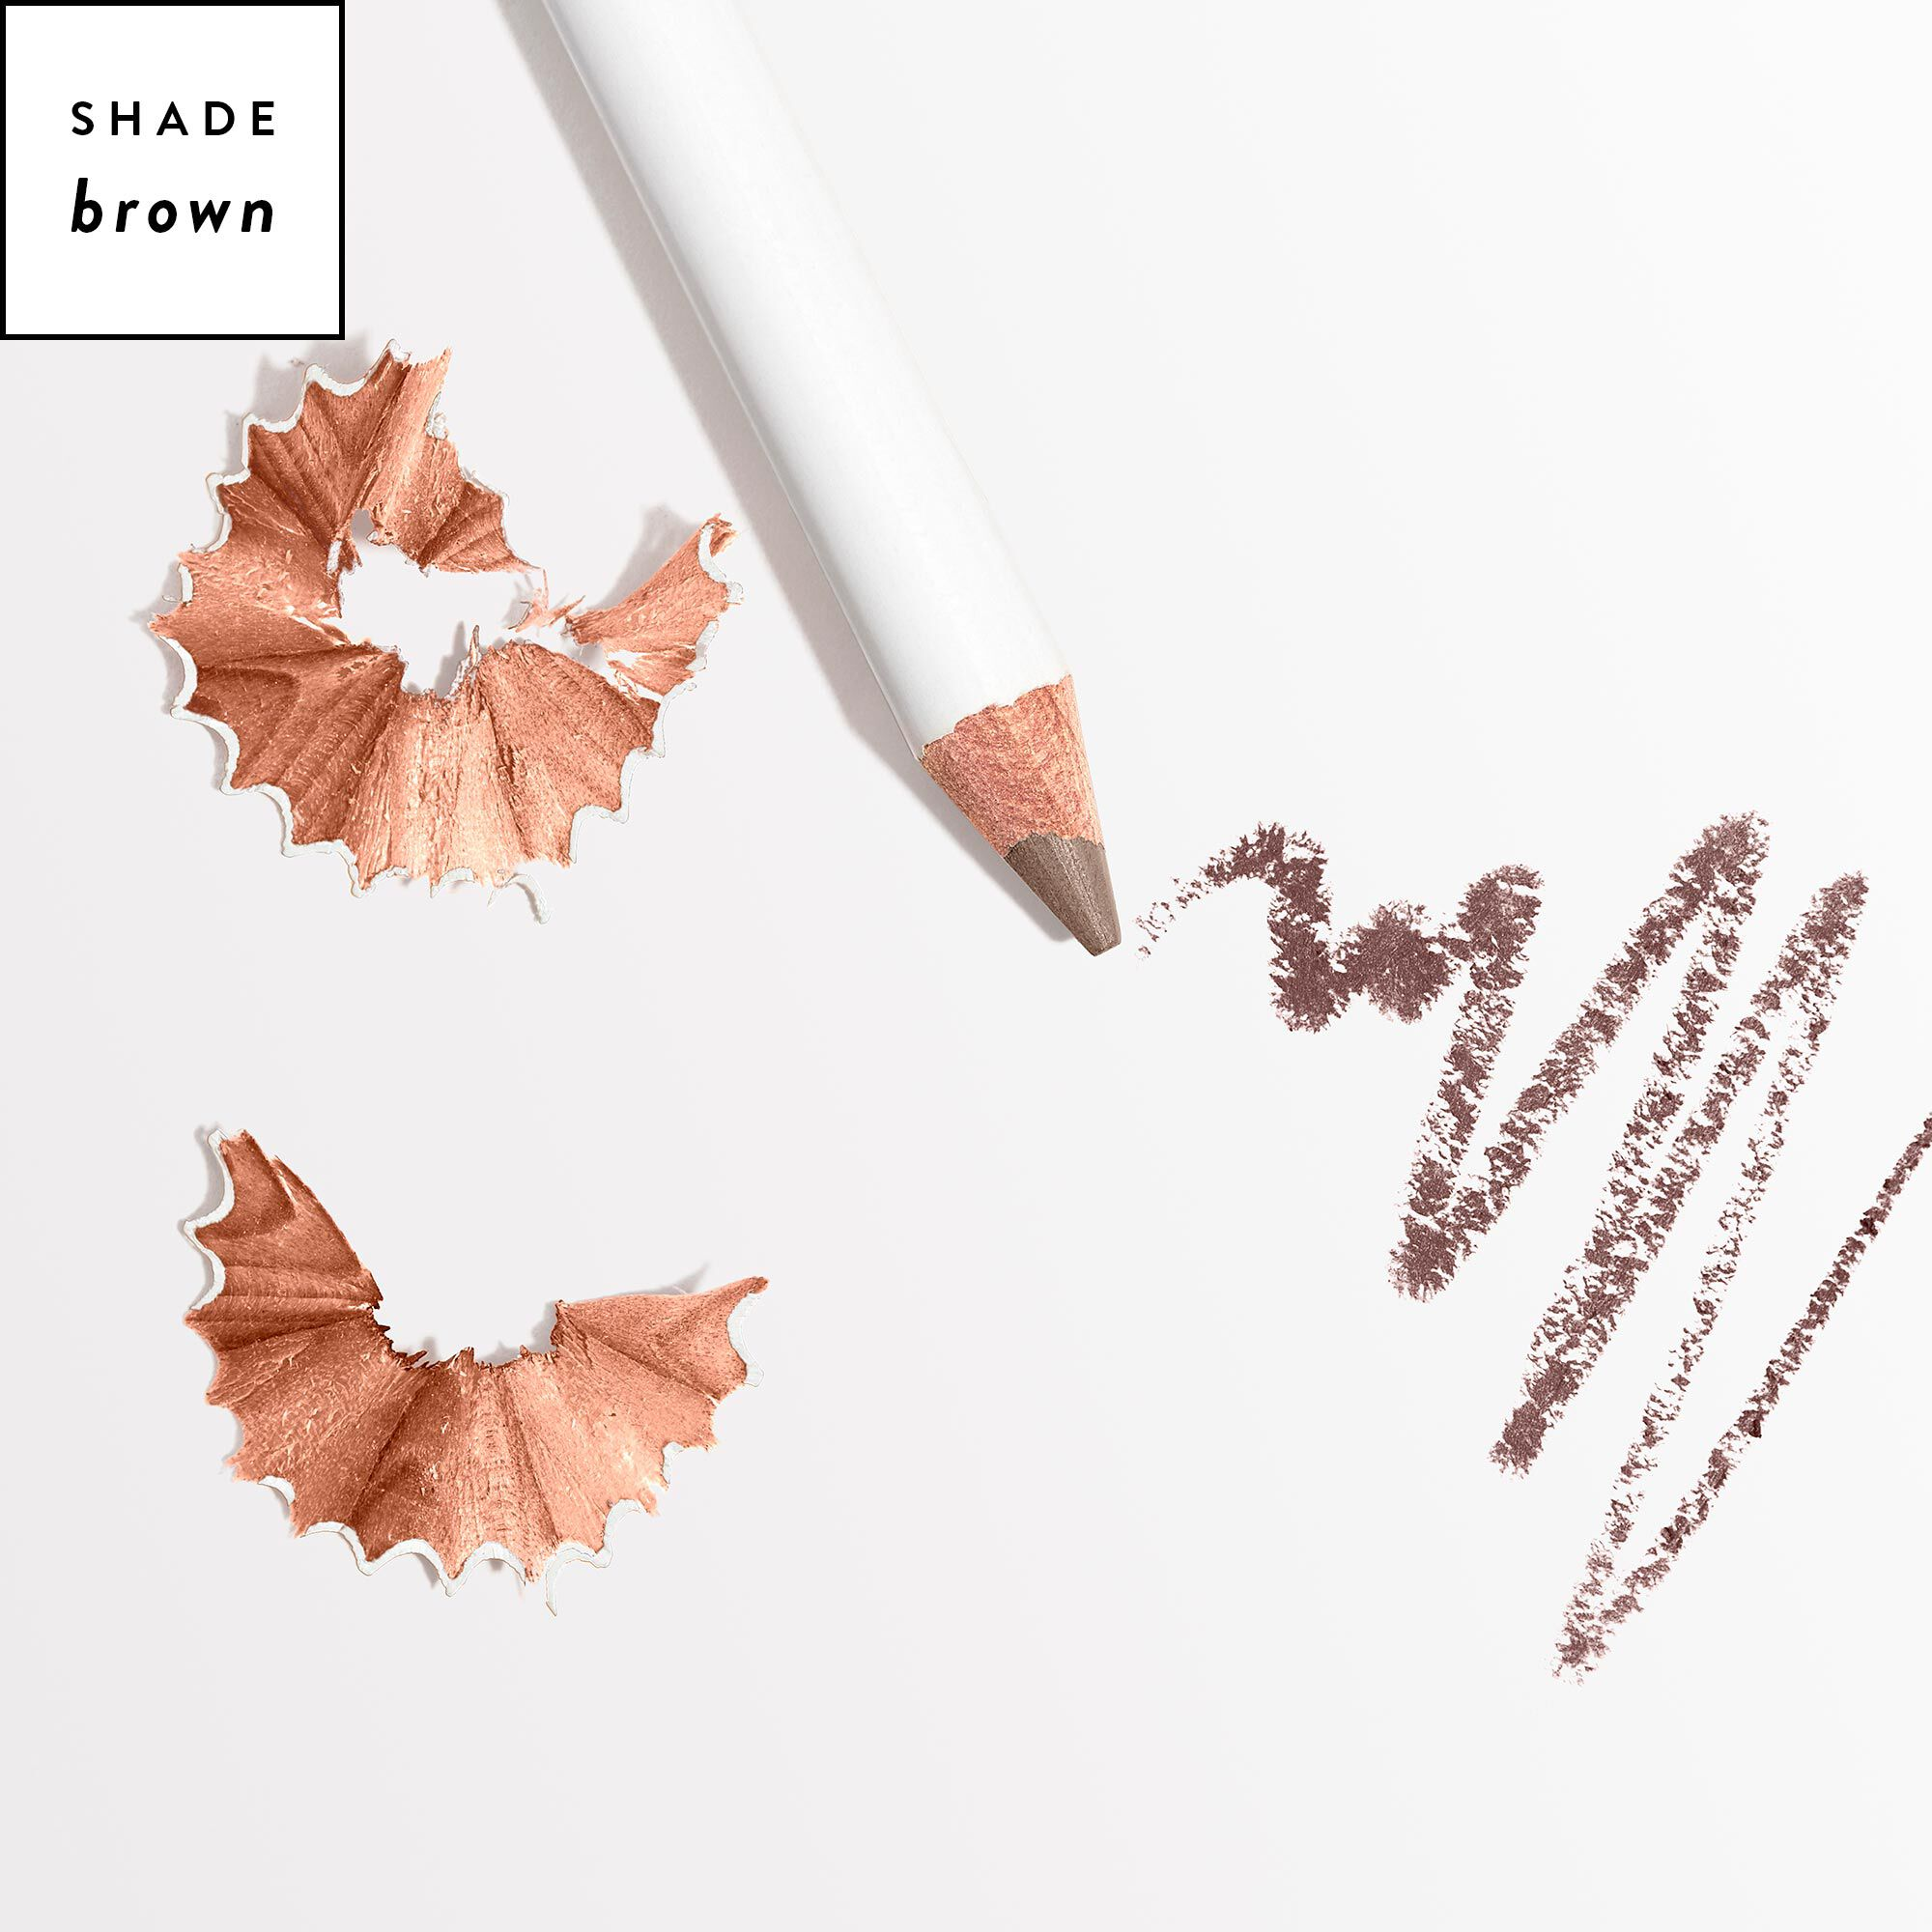 brown eyebrow pencil with shade callout